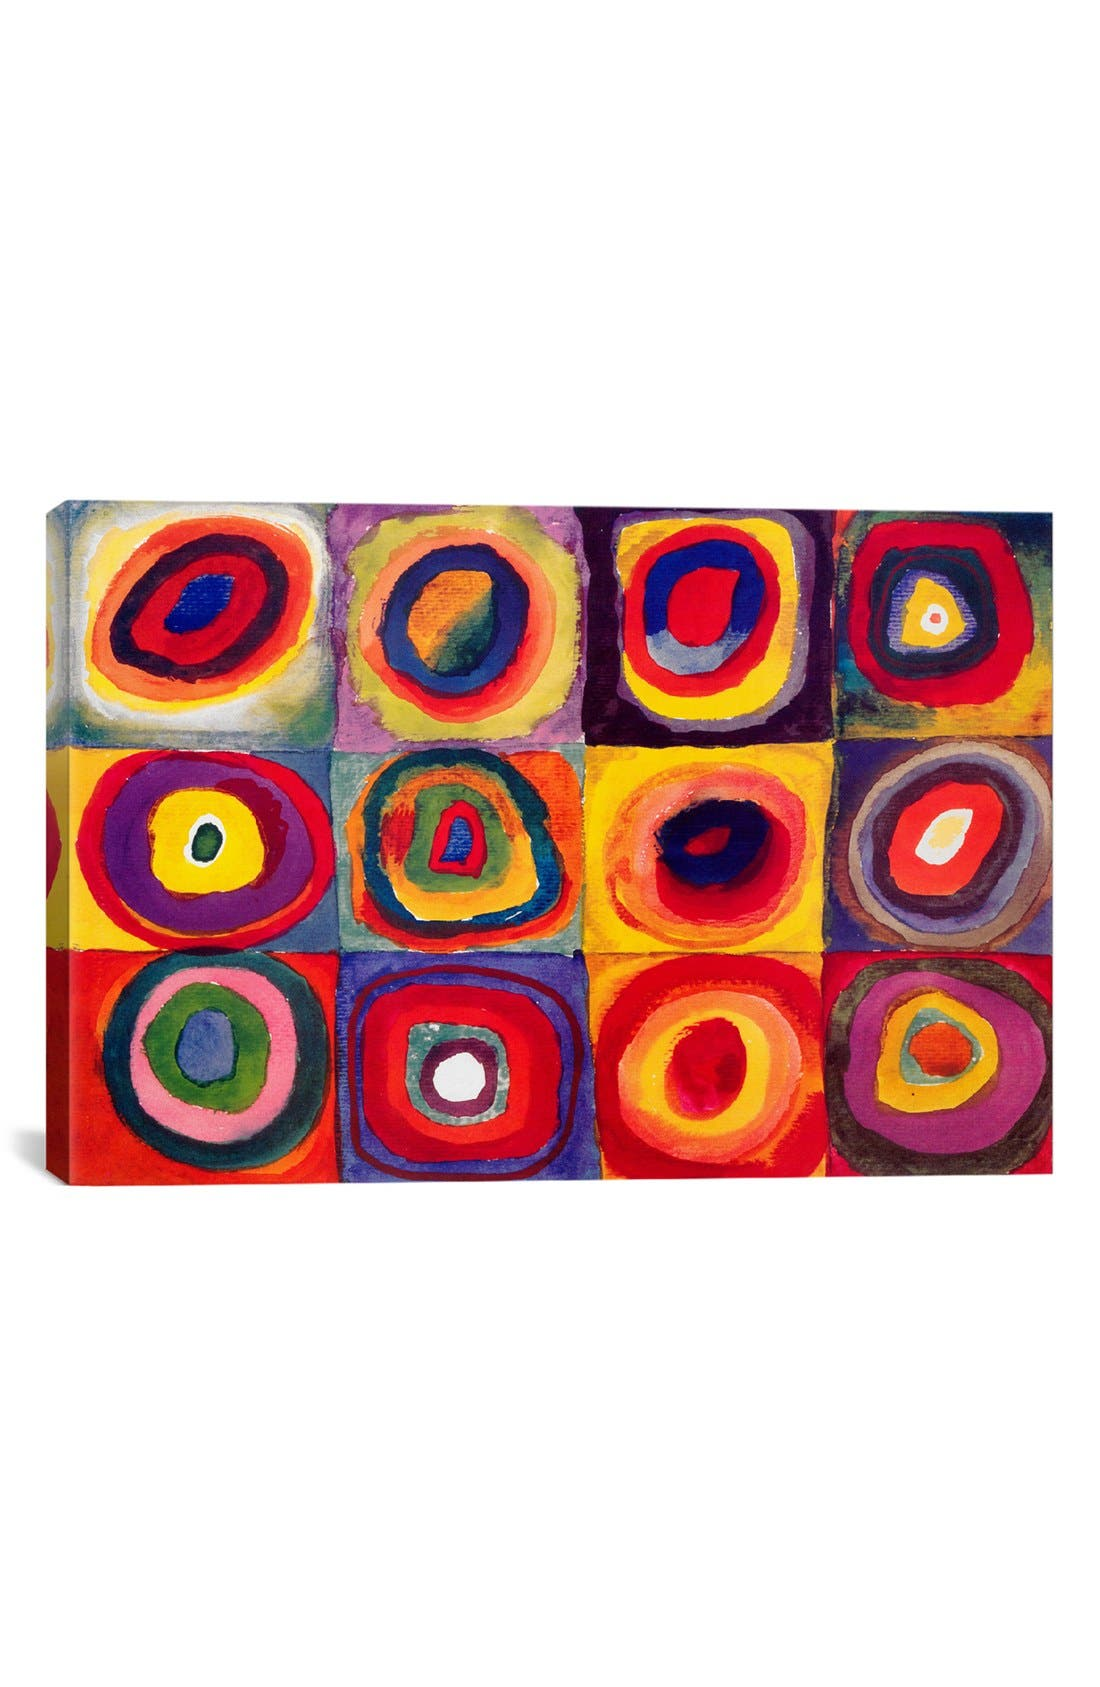 'Squares With Concentric Circles - Wassily Kandinsky' Giclée Print Canvas Art,                         Main,                         color, 600